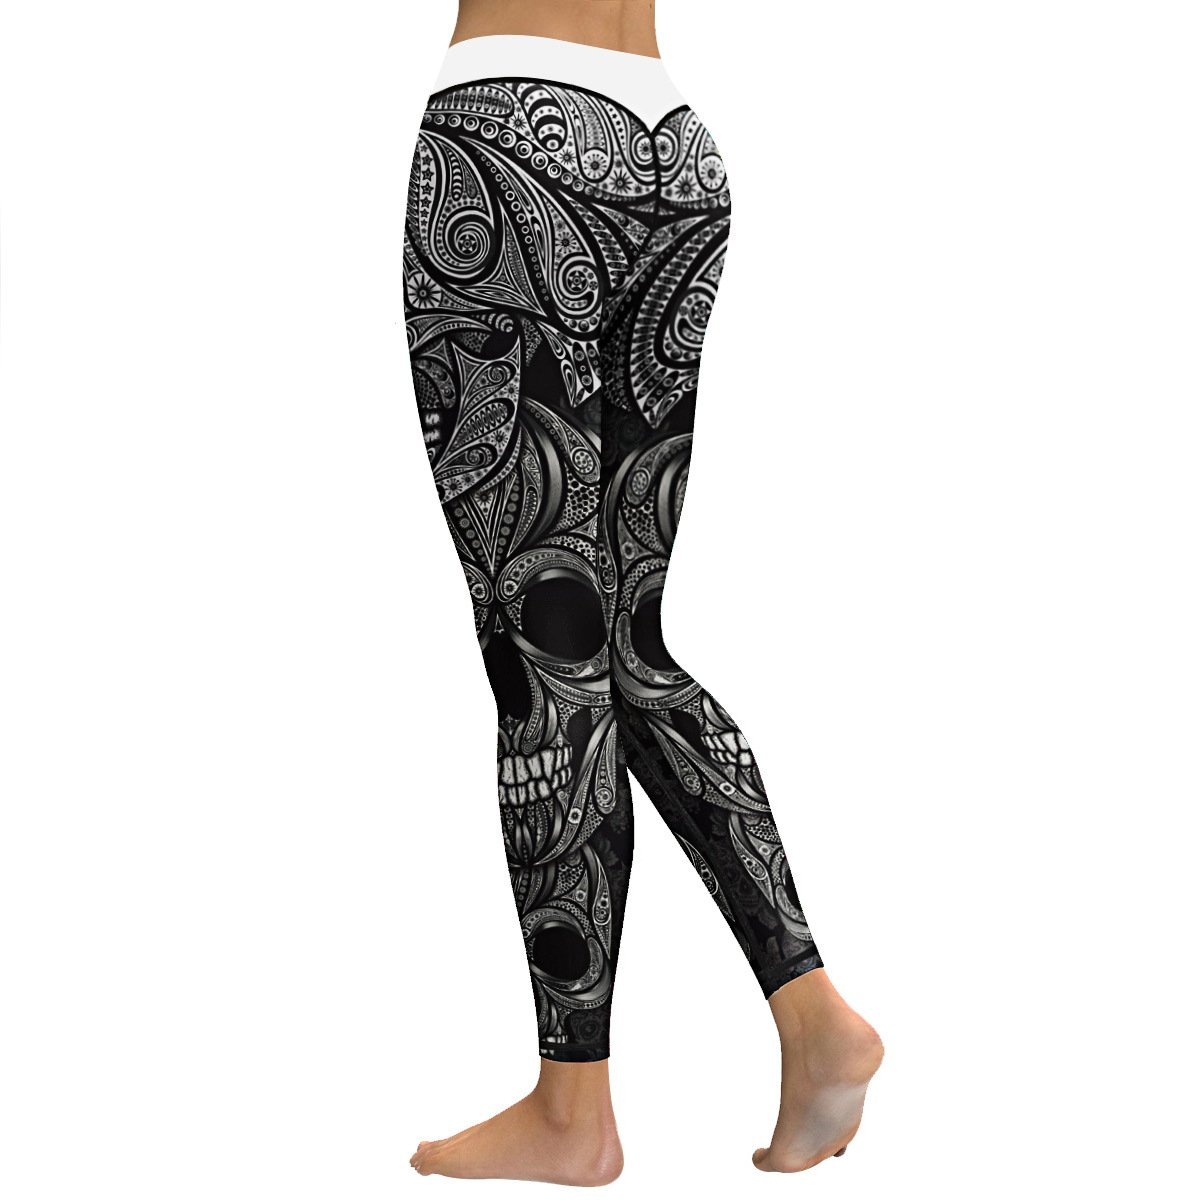 f927697c204522 Amazon.com: Women's Sugar Skull Print Yoga Workout Running Gym Leggings  Skinny Tights Active Yoga Pants: Clothing